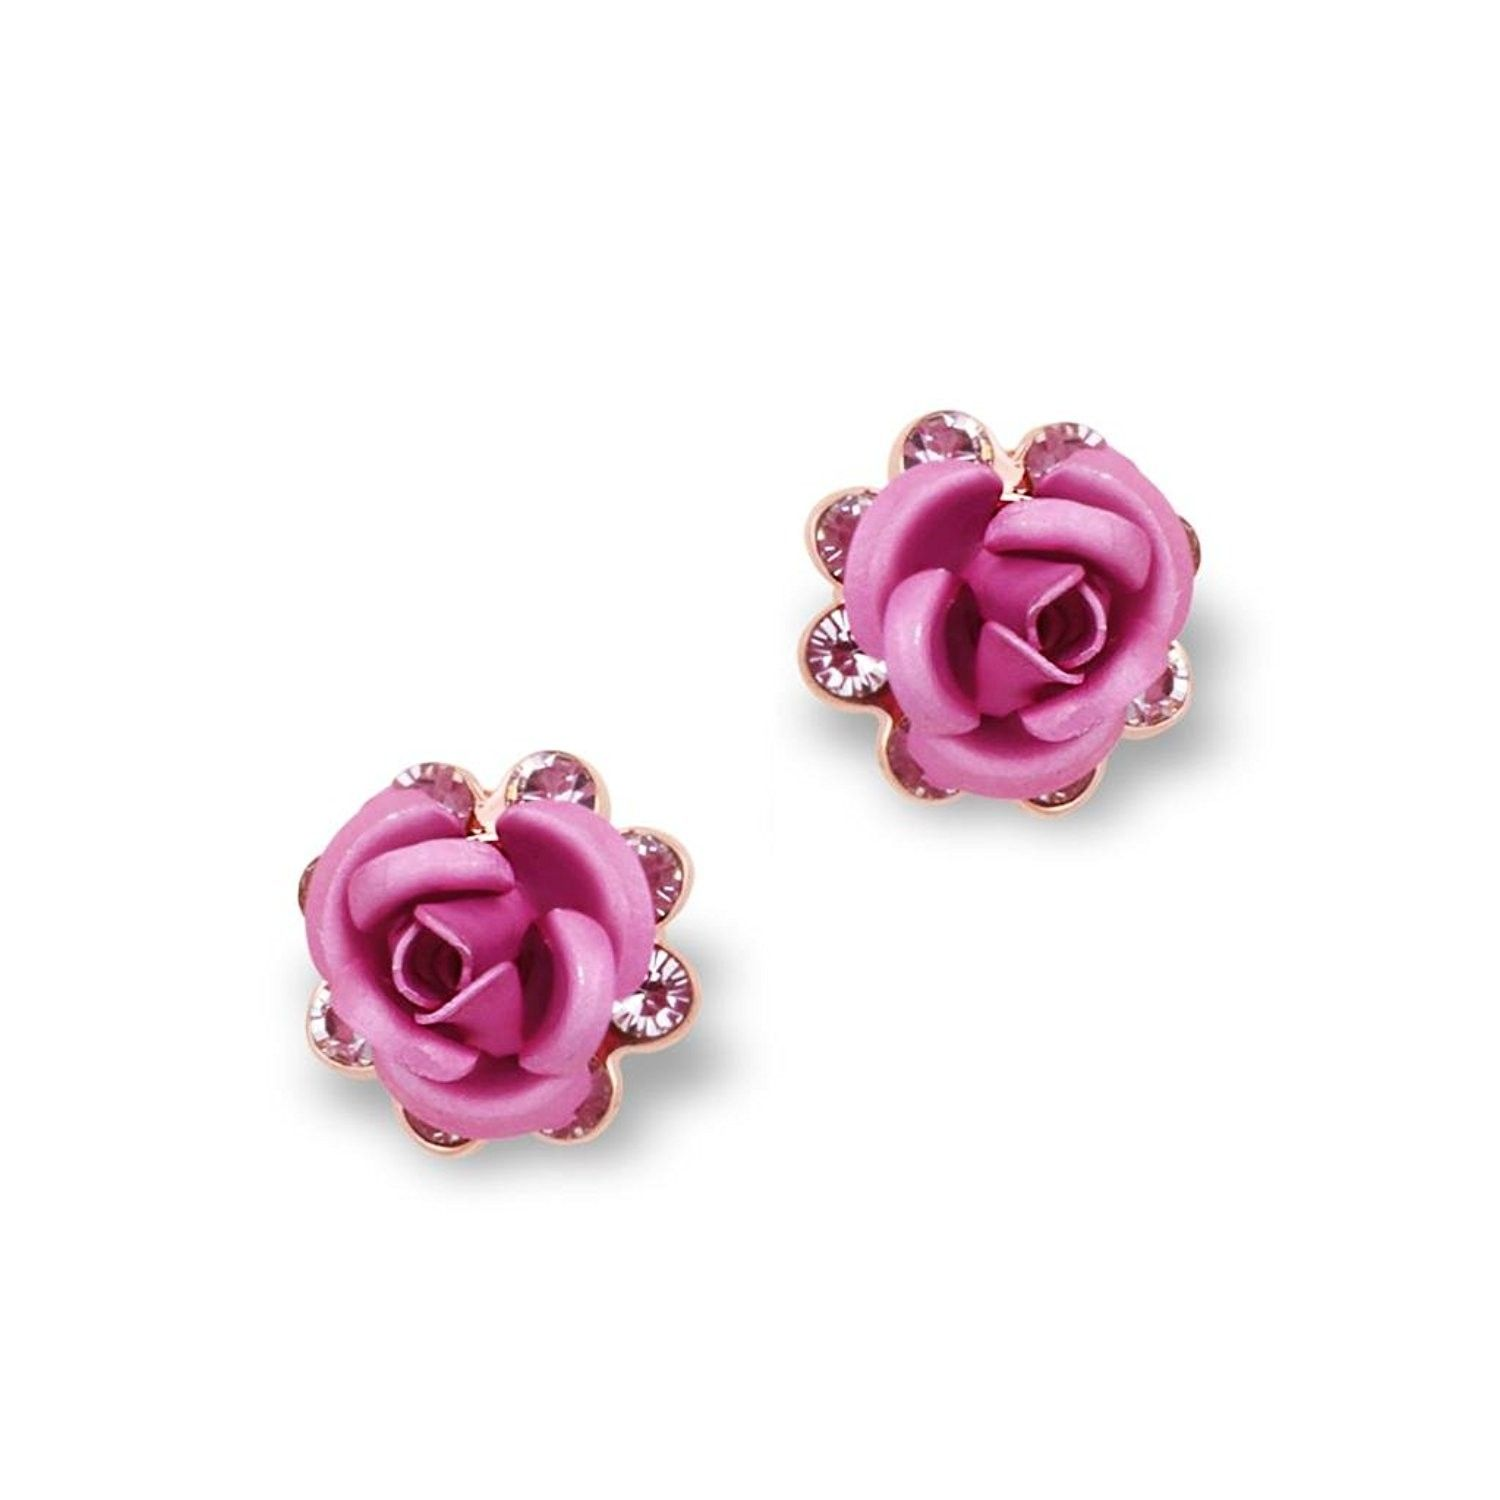 Women S Rose Flower Stud Earrings Pink E16 Cb11kygzbht Flower Earrings Studs Flower Studs Stud Earrings